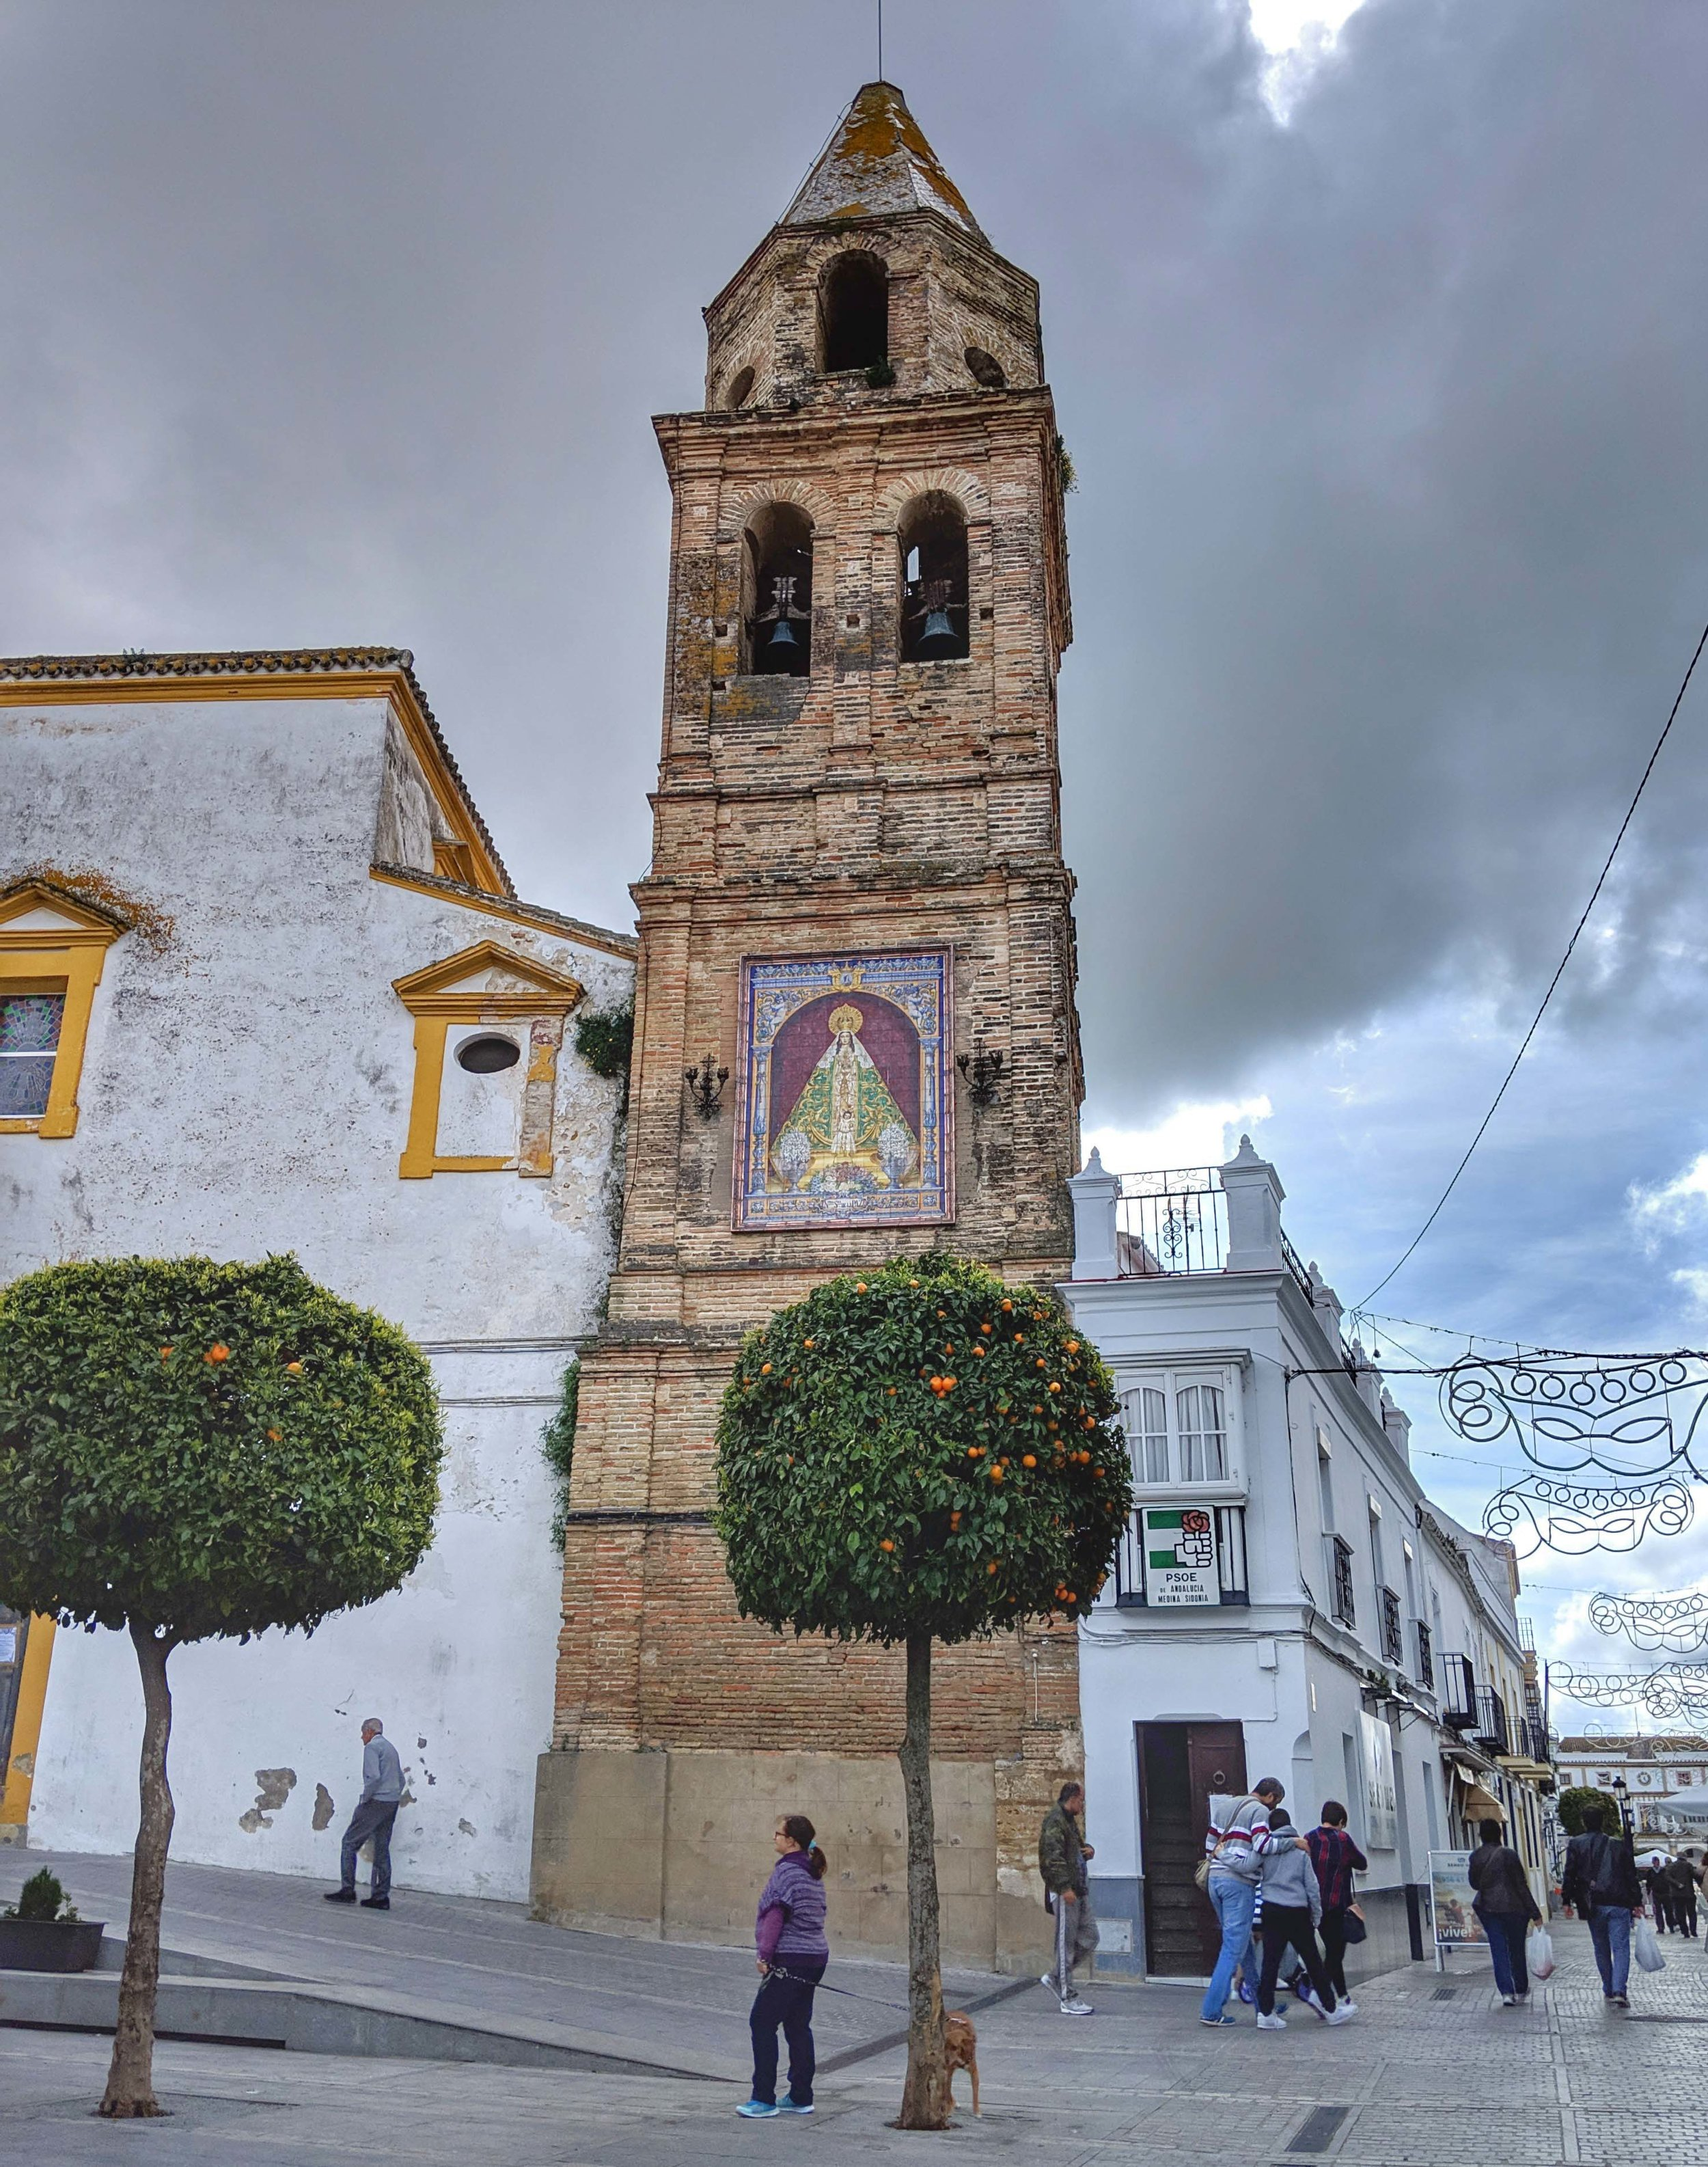 Church Medina Sidonia.jpg